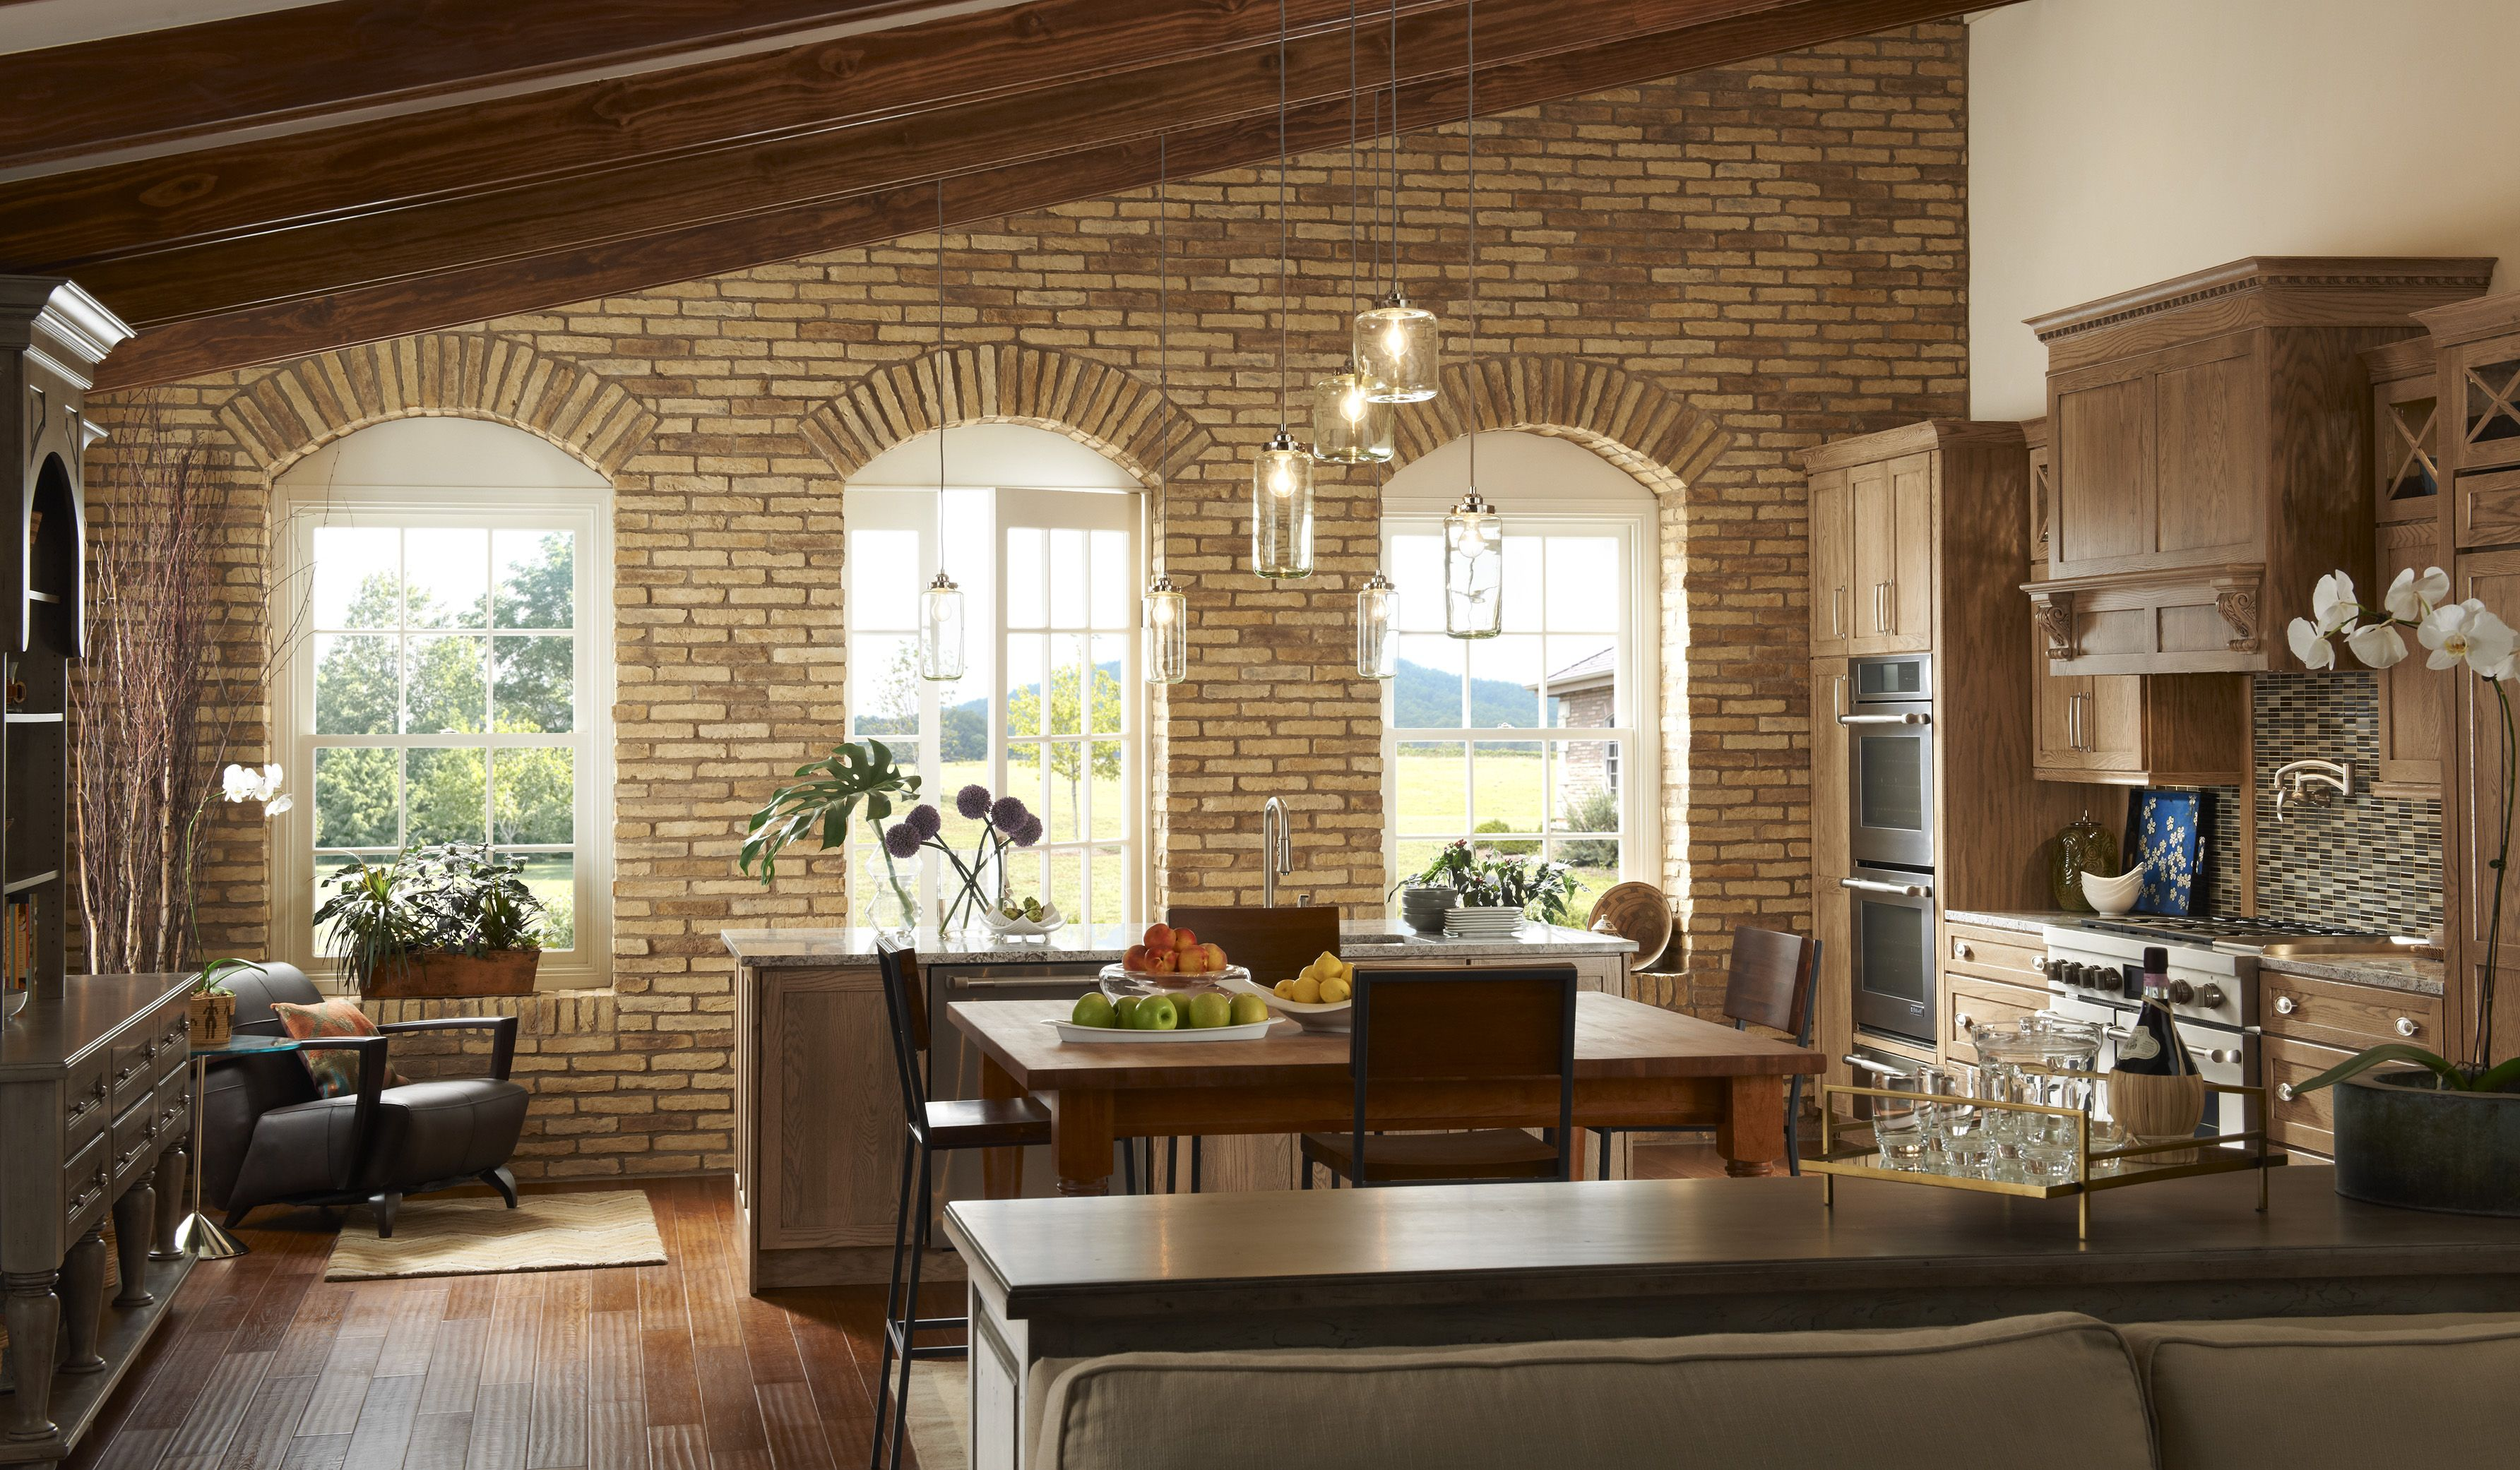 Brick Accent Wall In Kitchen And Arched Windows Stone